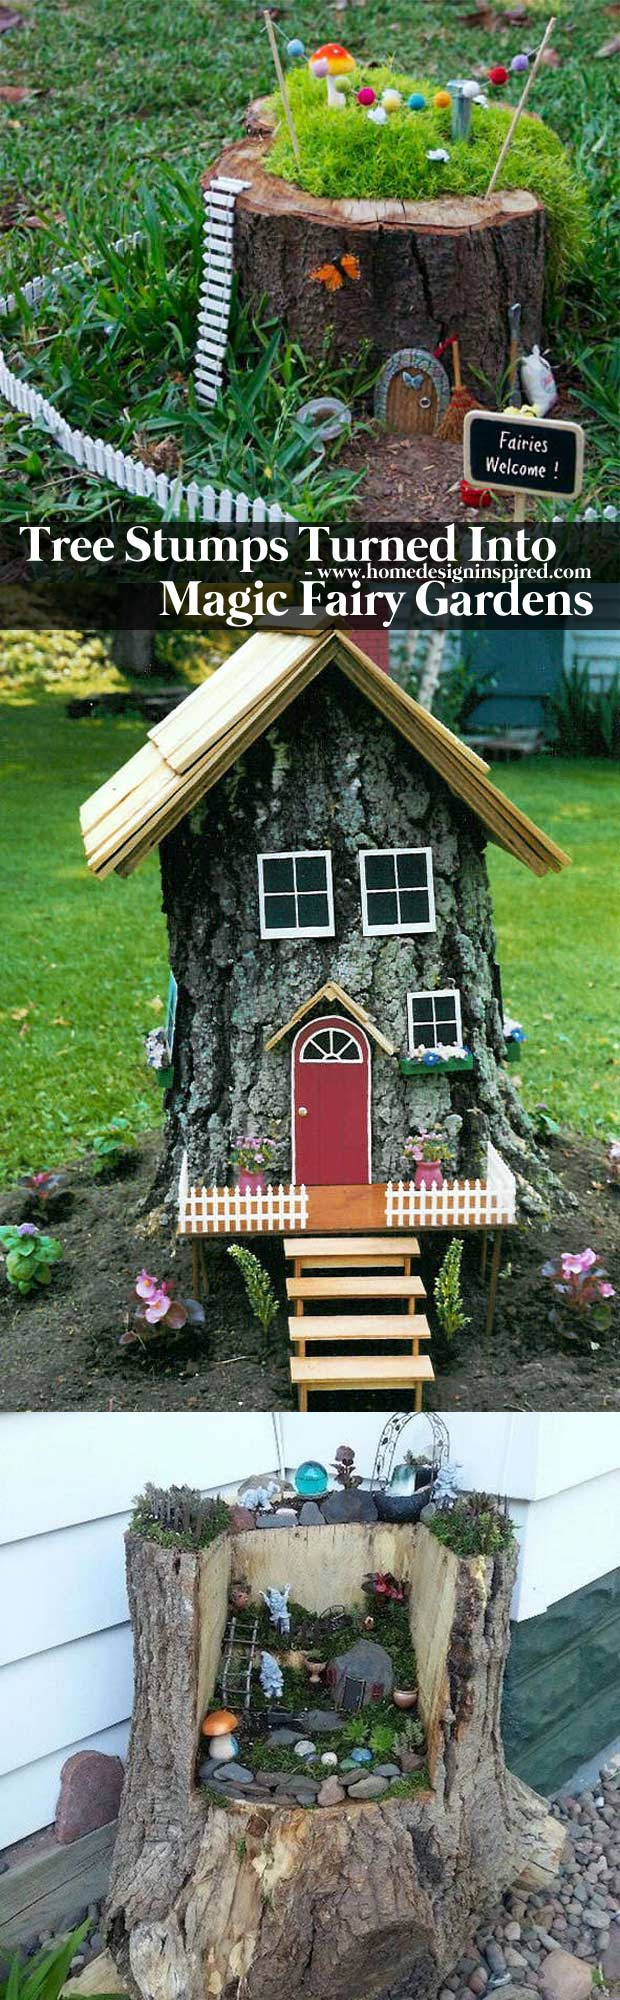 Tree stumps turned into magic fairy houses